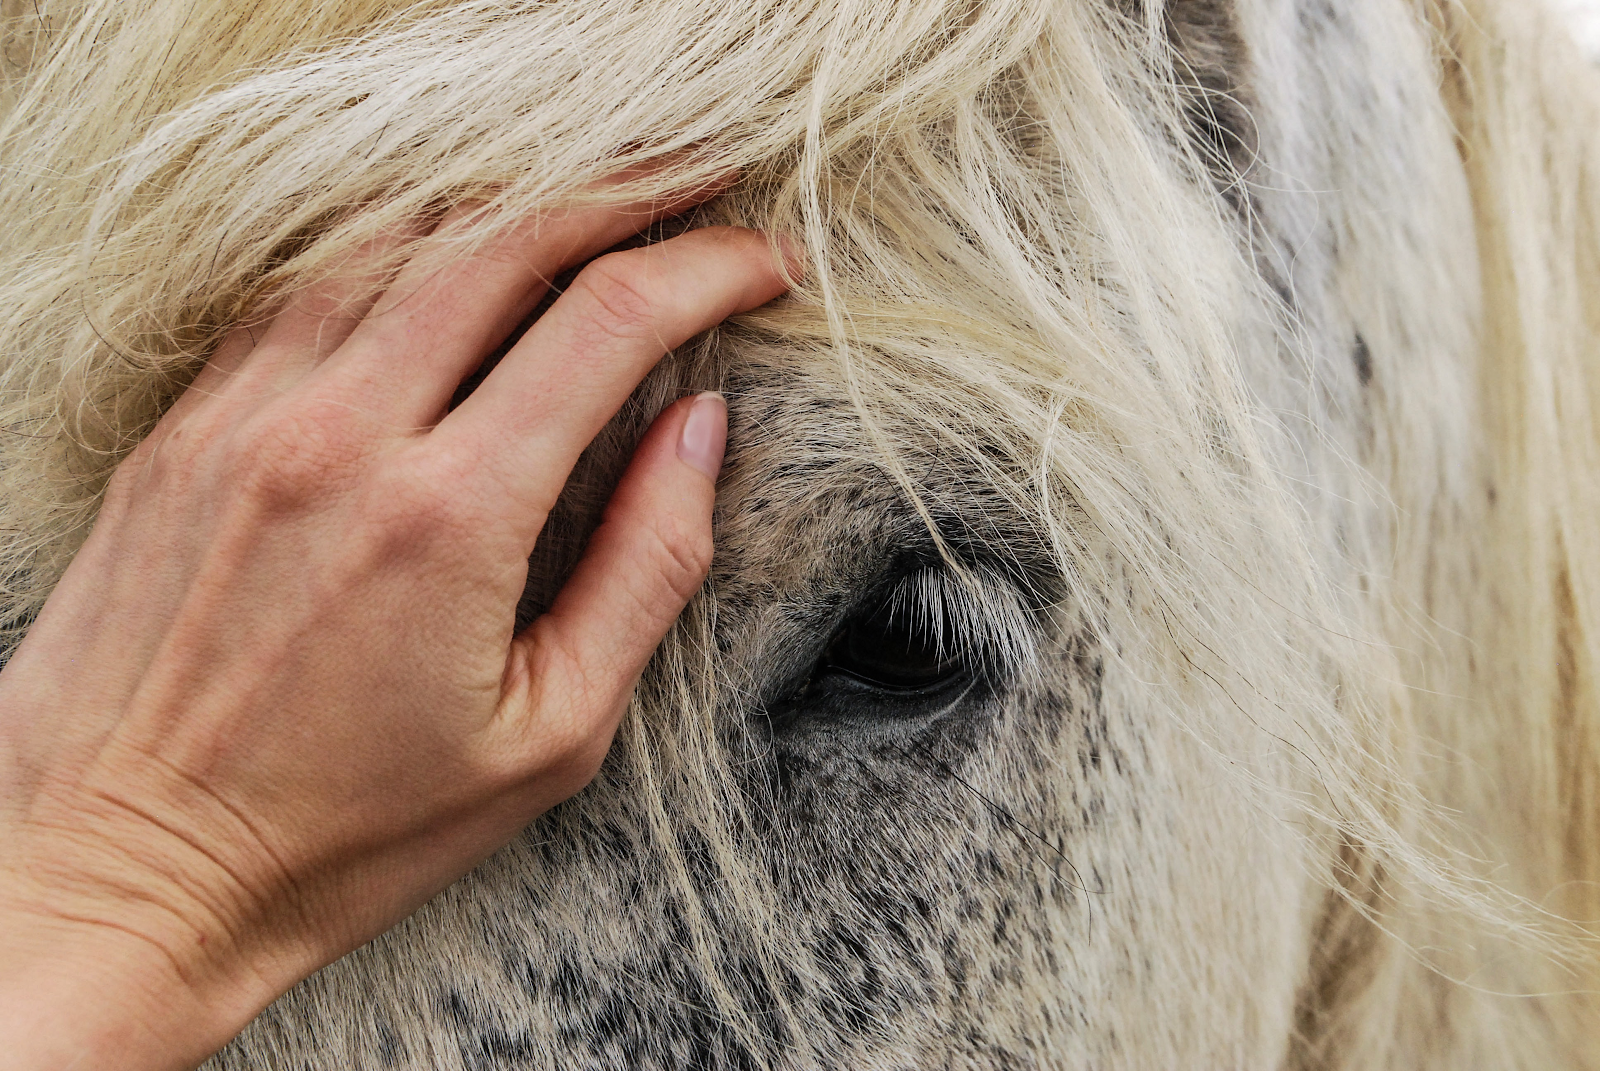 hand on horse's face